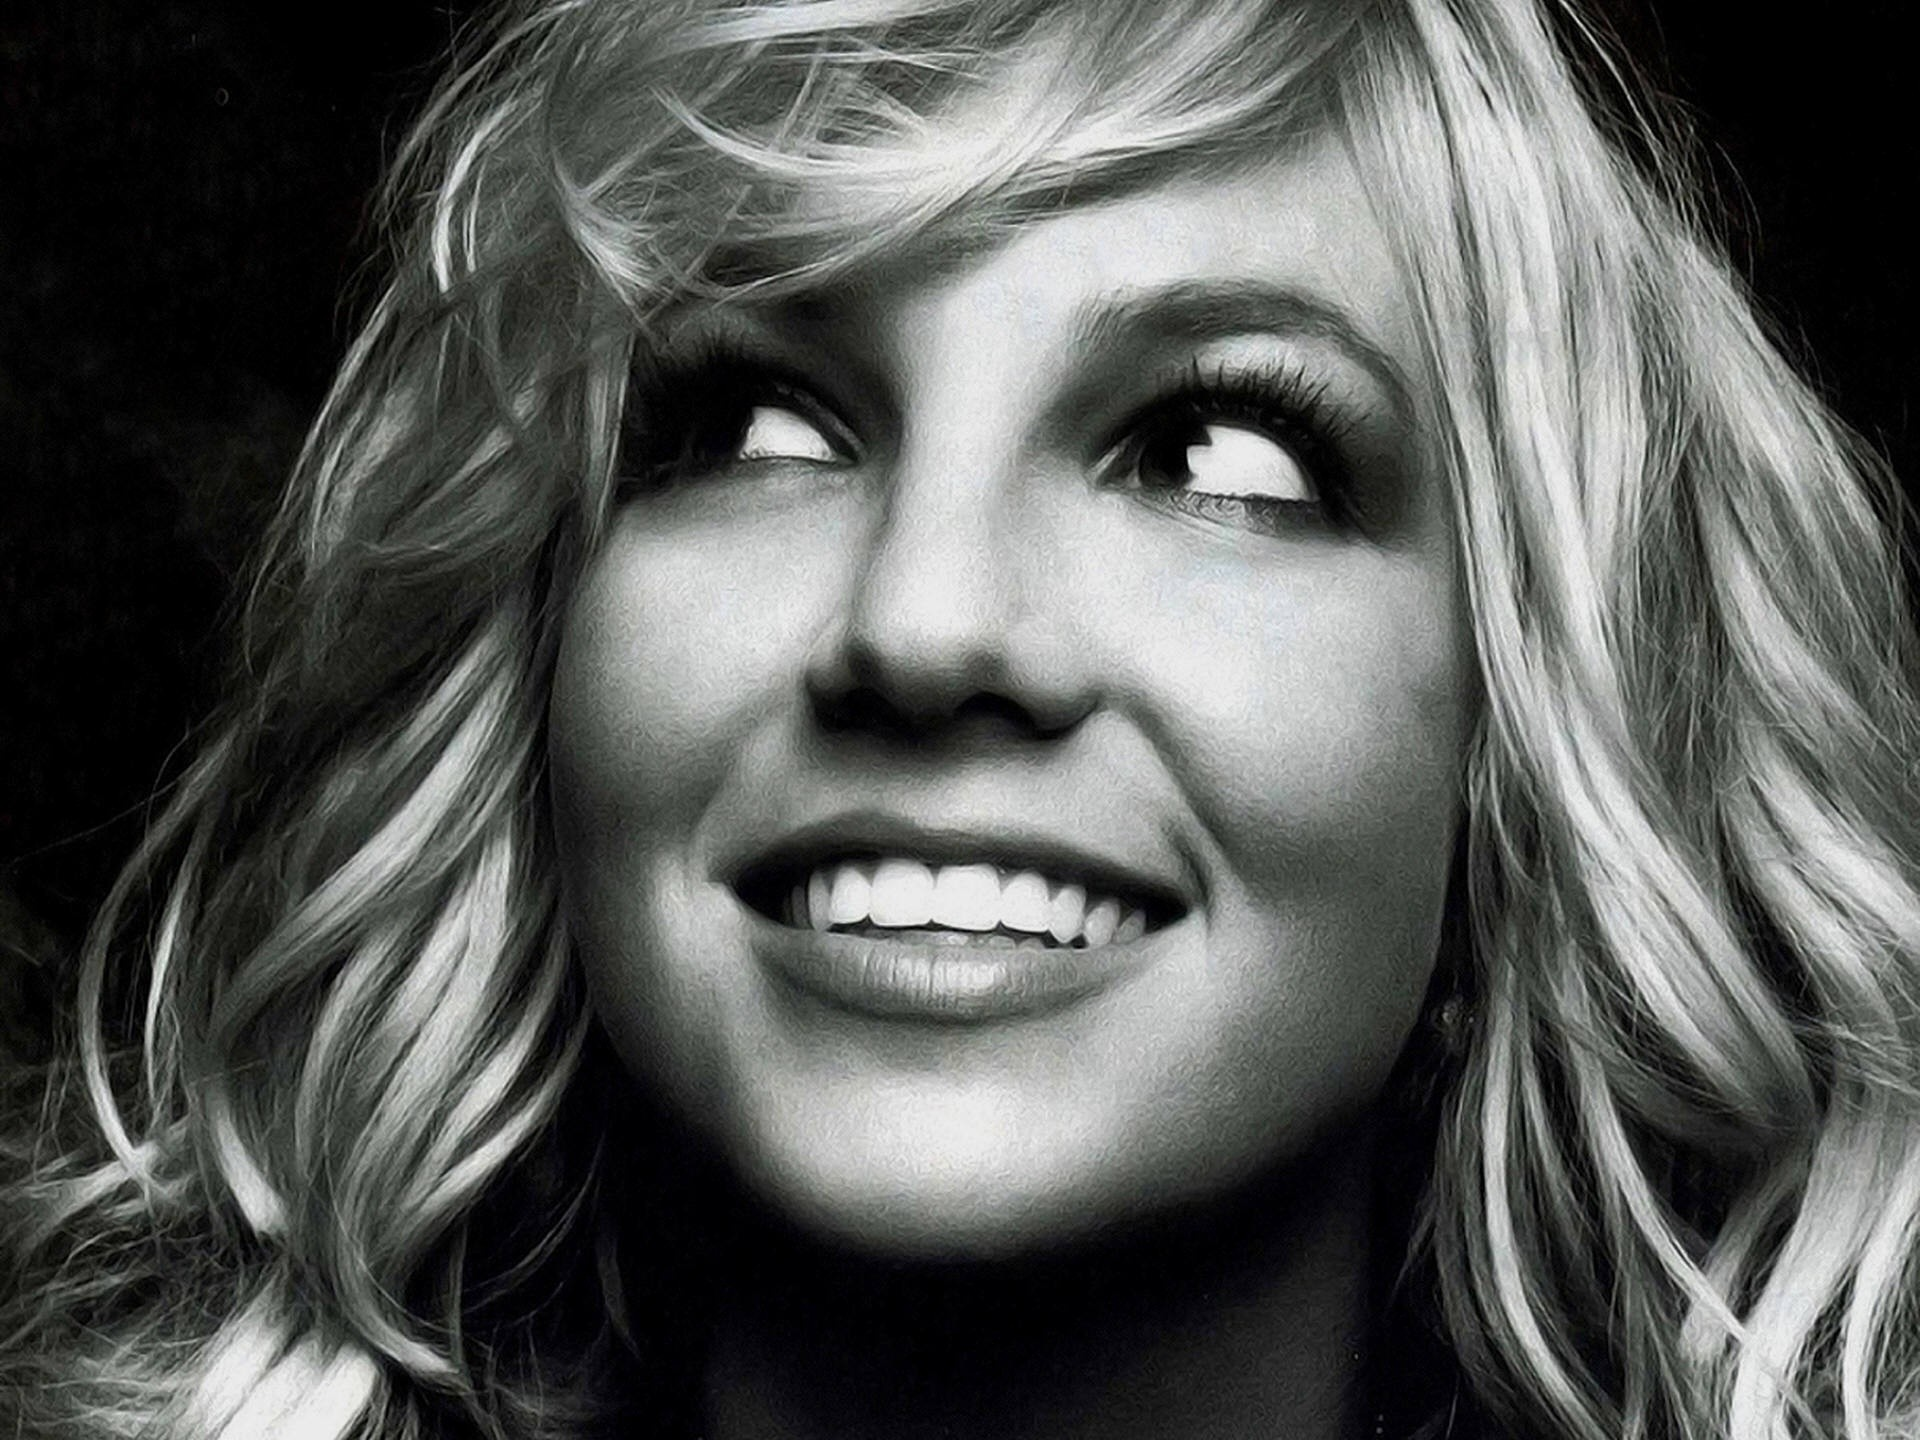 1920x1440 Britney Spears HD Wallpaper | Hintergrund |  | ID:119898 -  Wallpaper Abyss